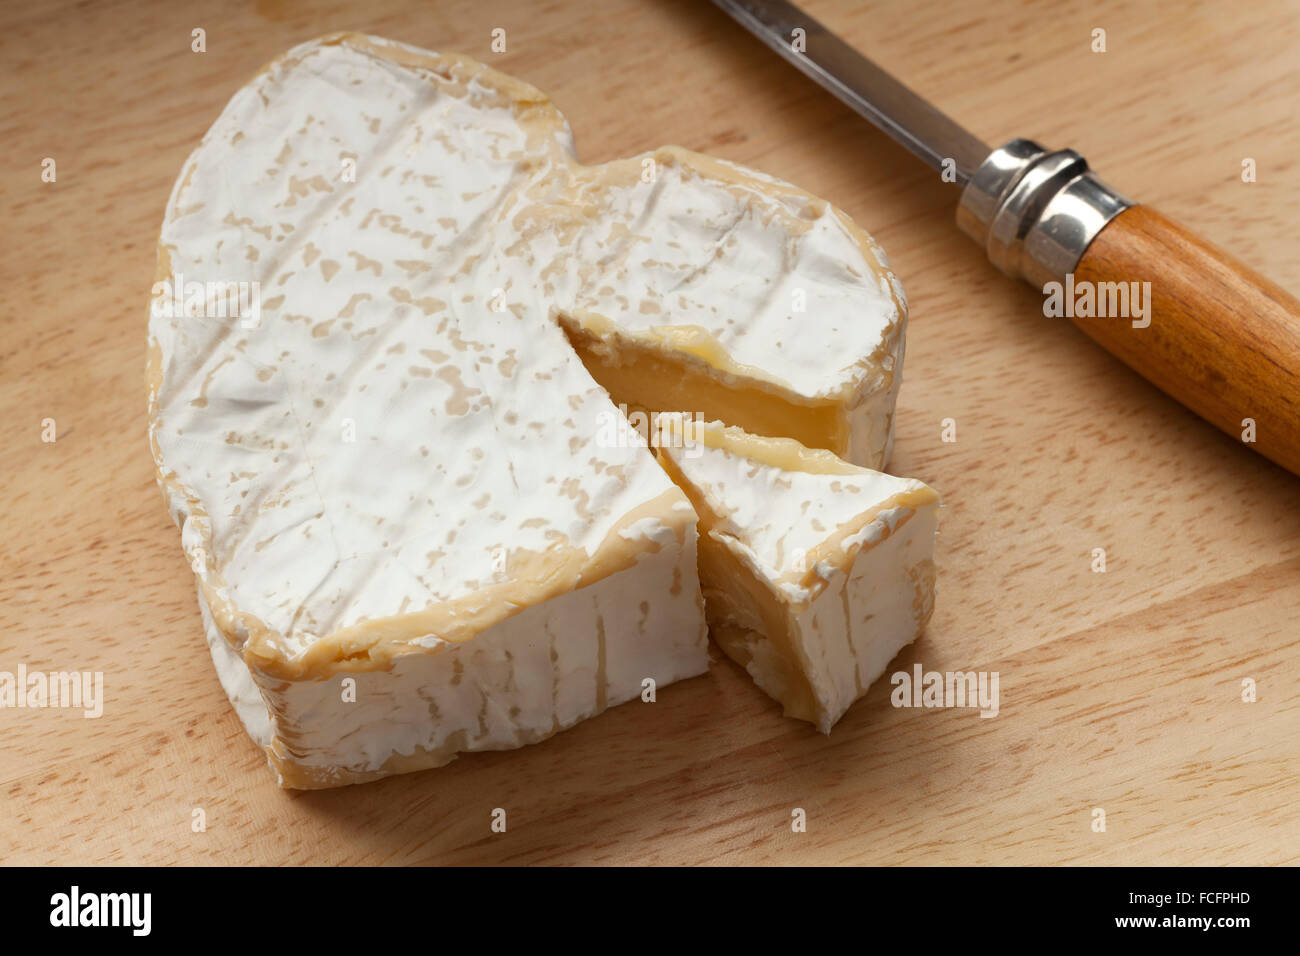 Traditional French neuchatel ripe cheese and a slice - Stock Image